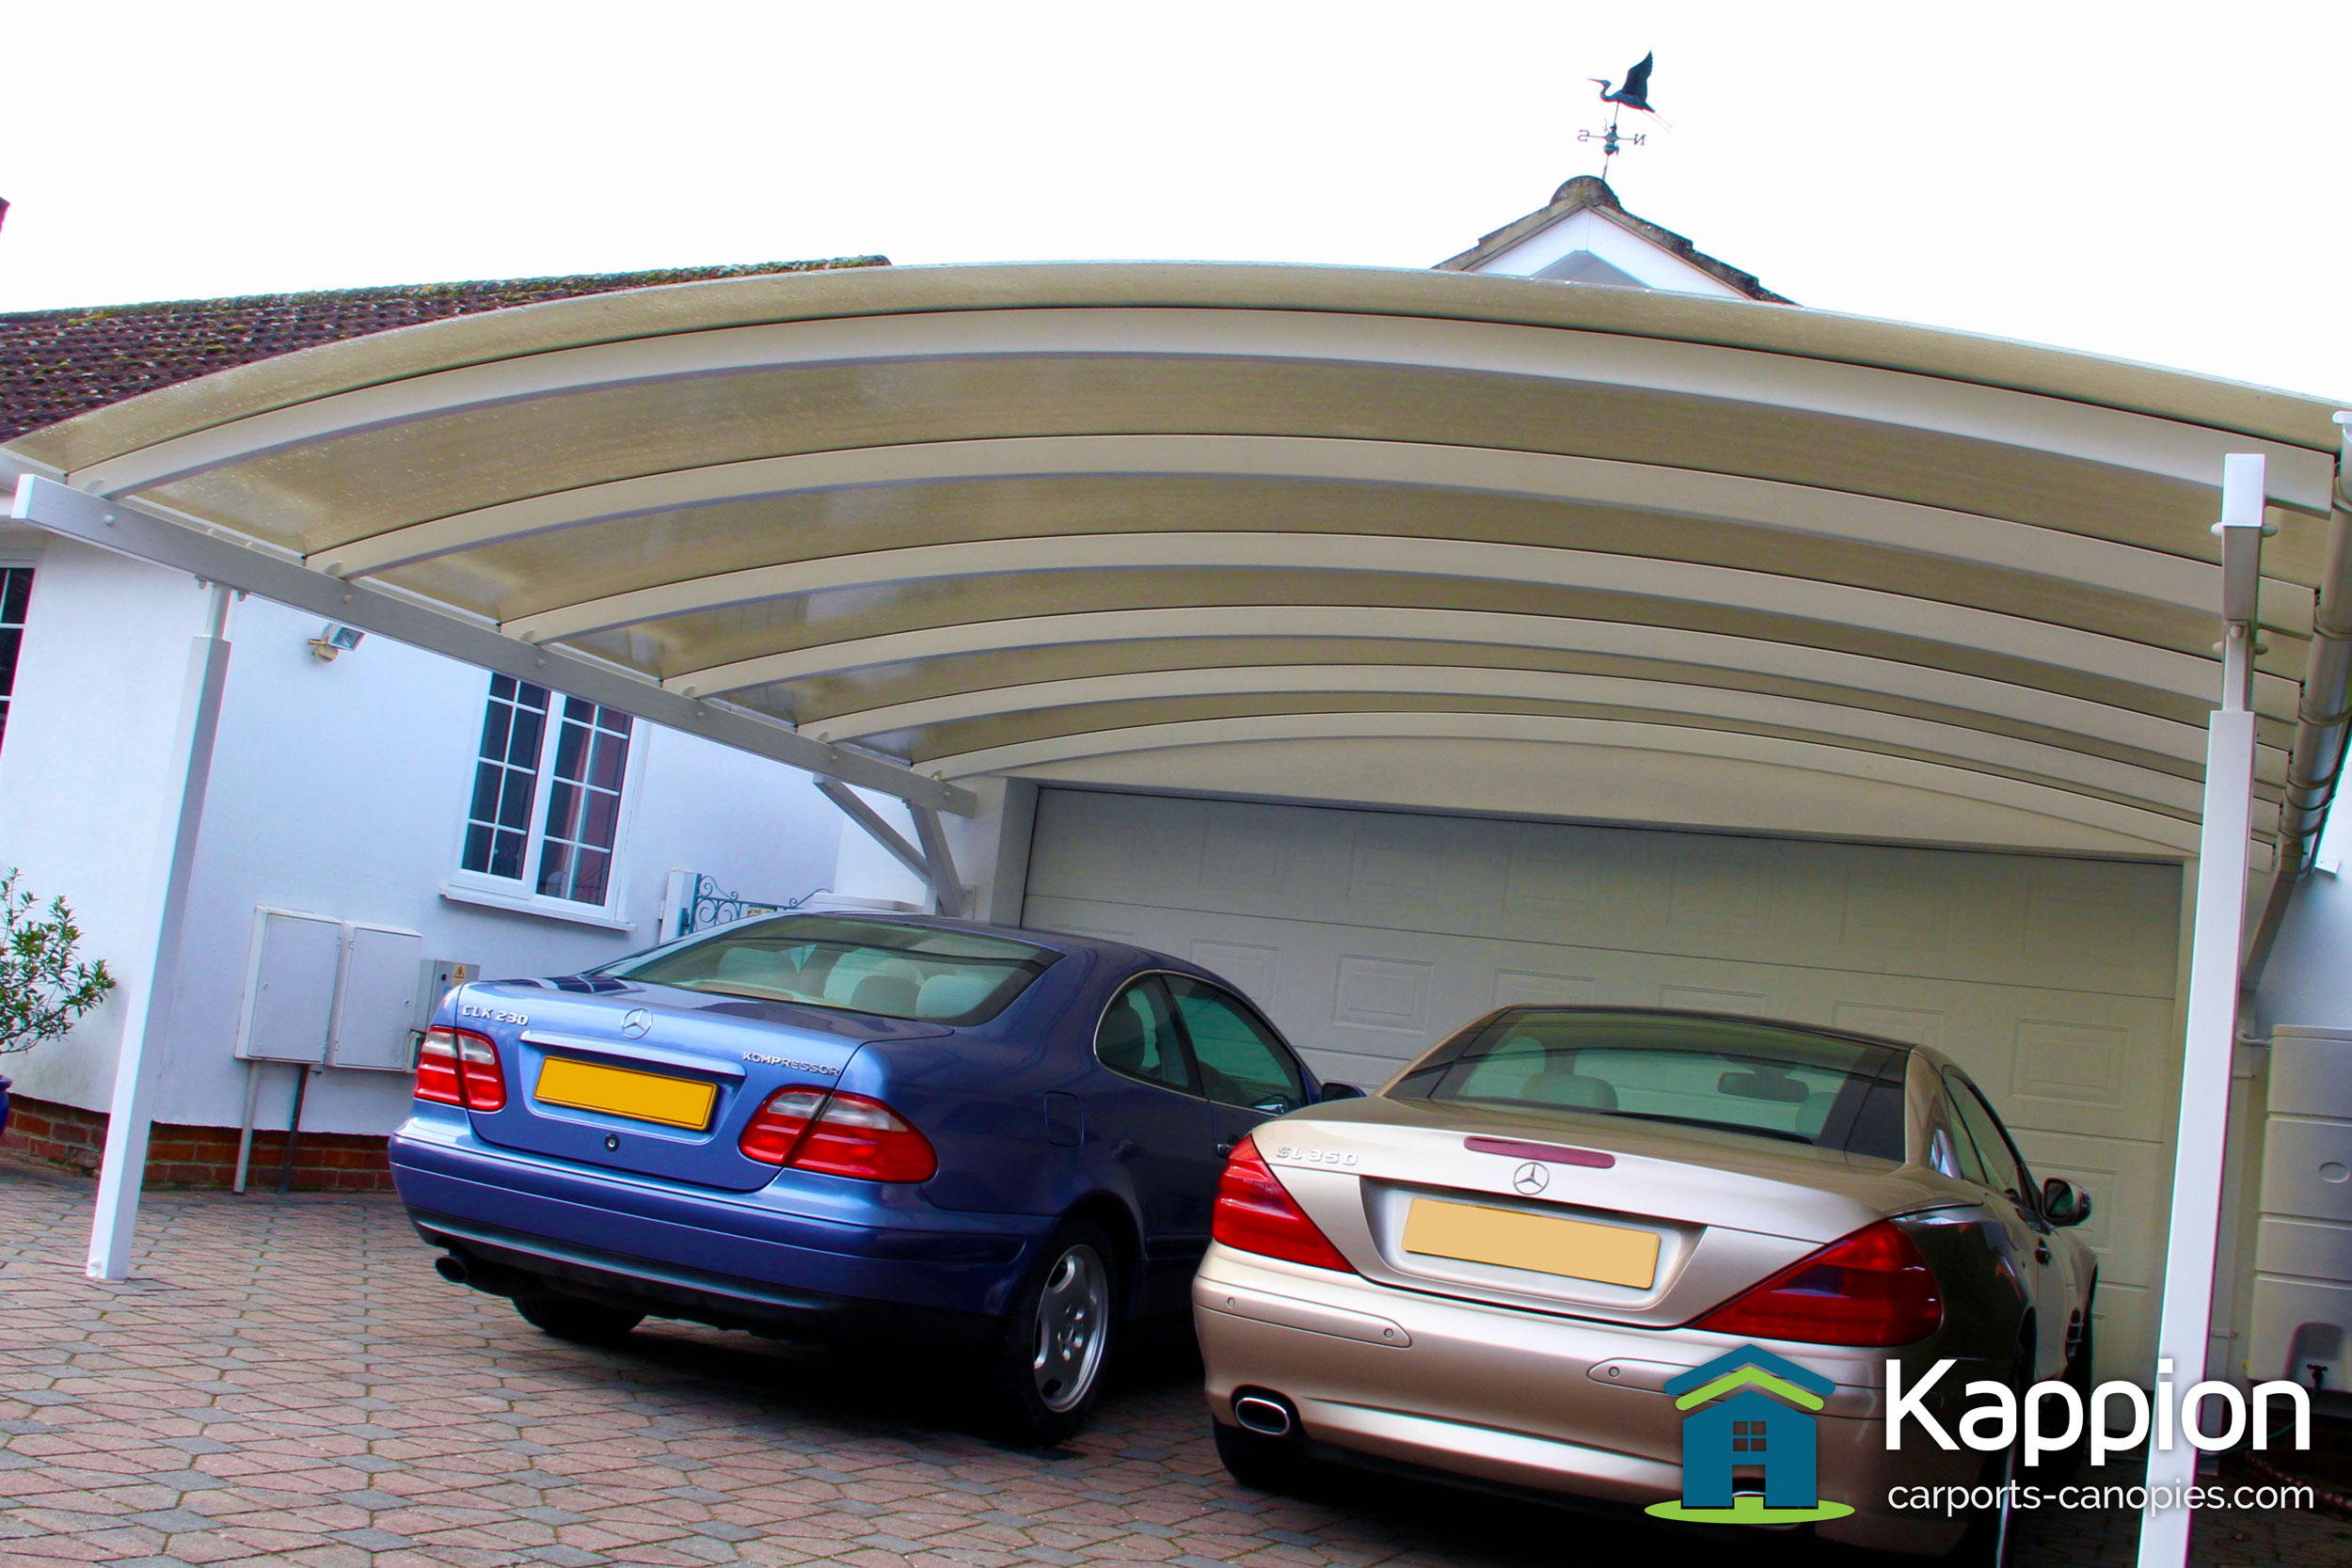 Canopies And Carports : Double carport canopy installed in salisbury kappion